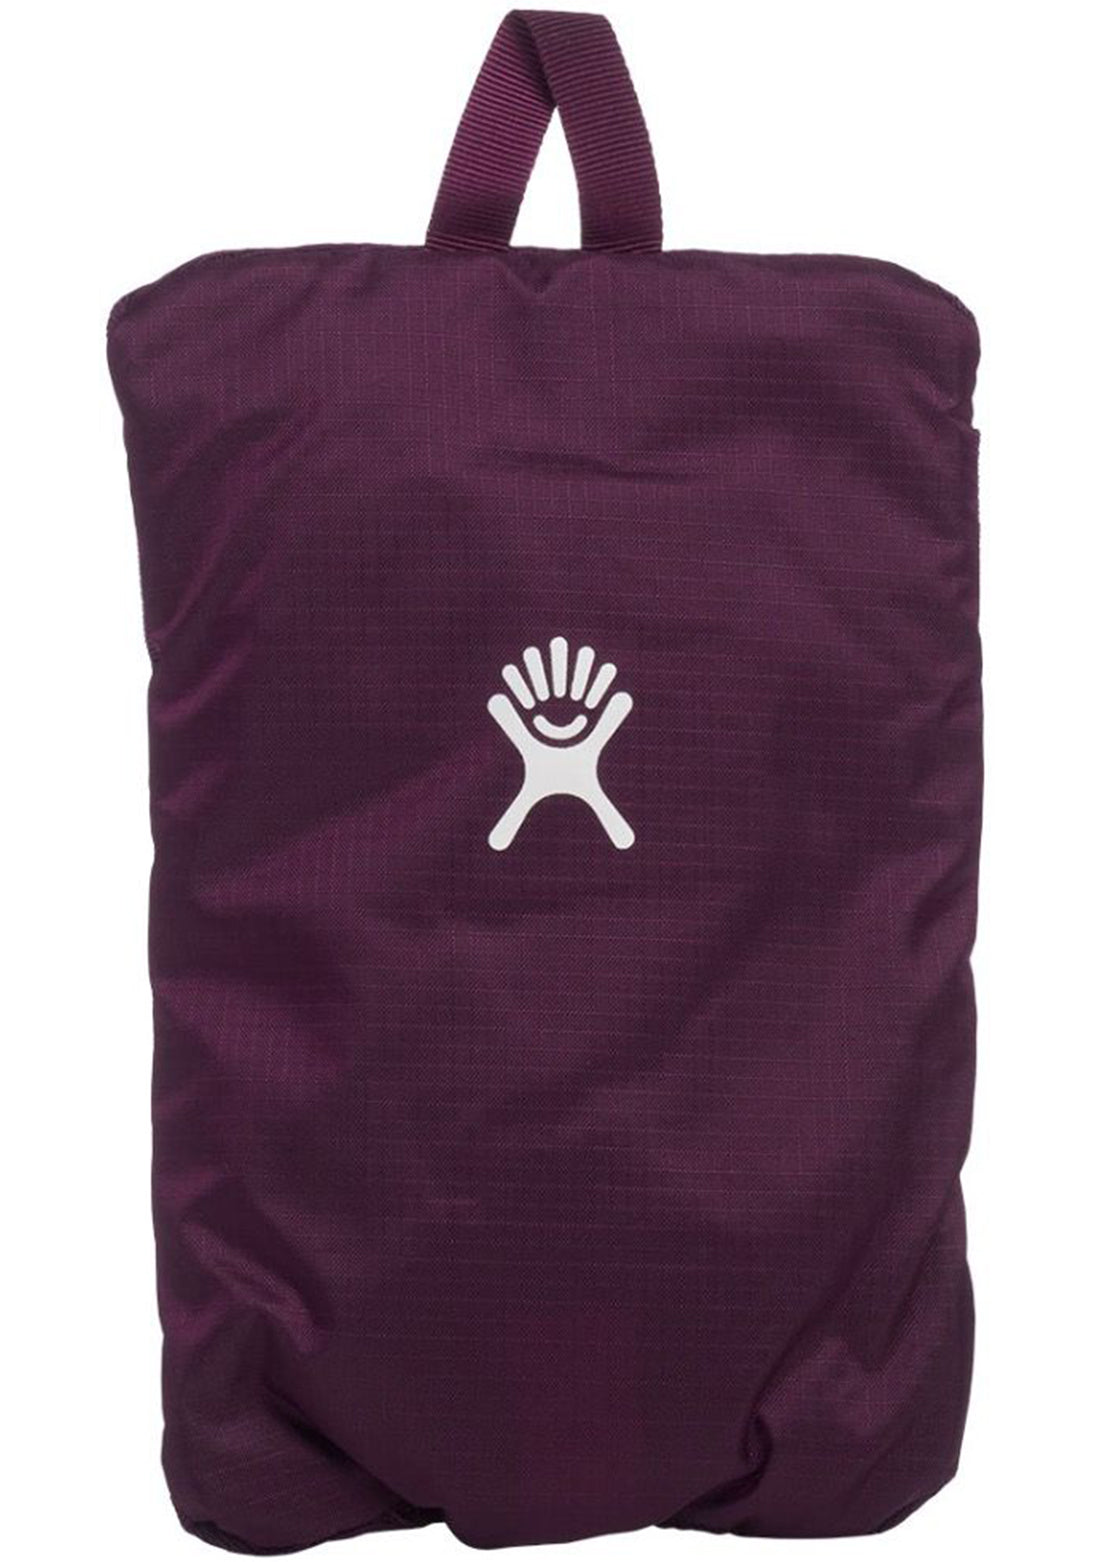 Hydro Flask Medium Packable Bottle Sling Eggplant